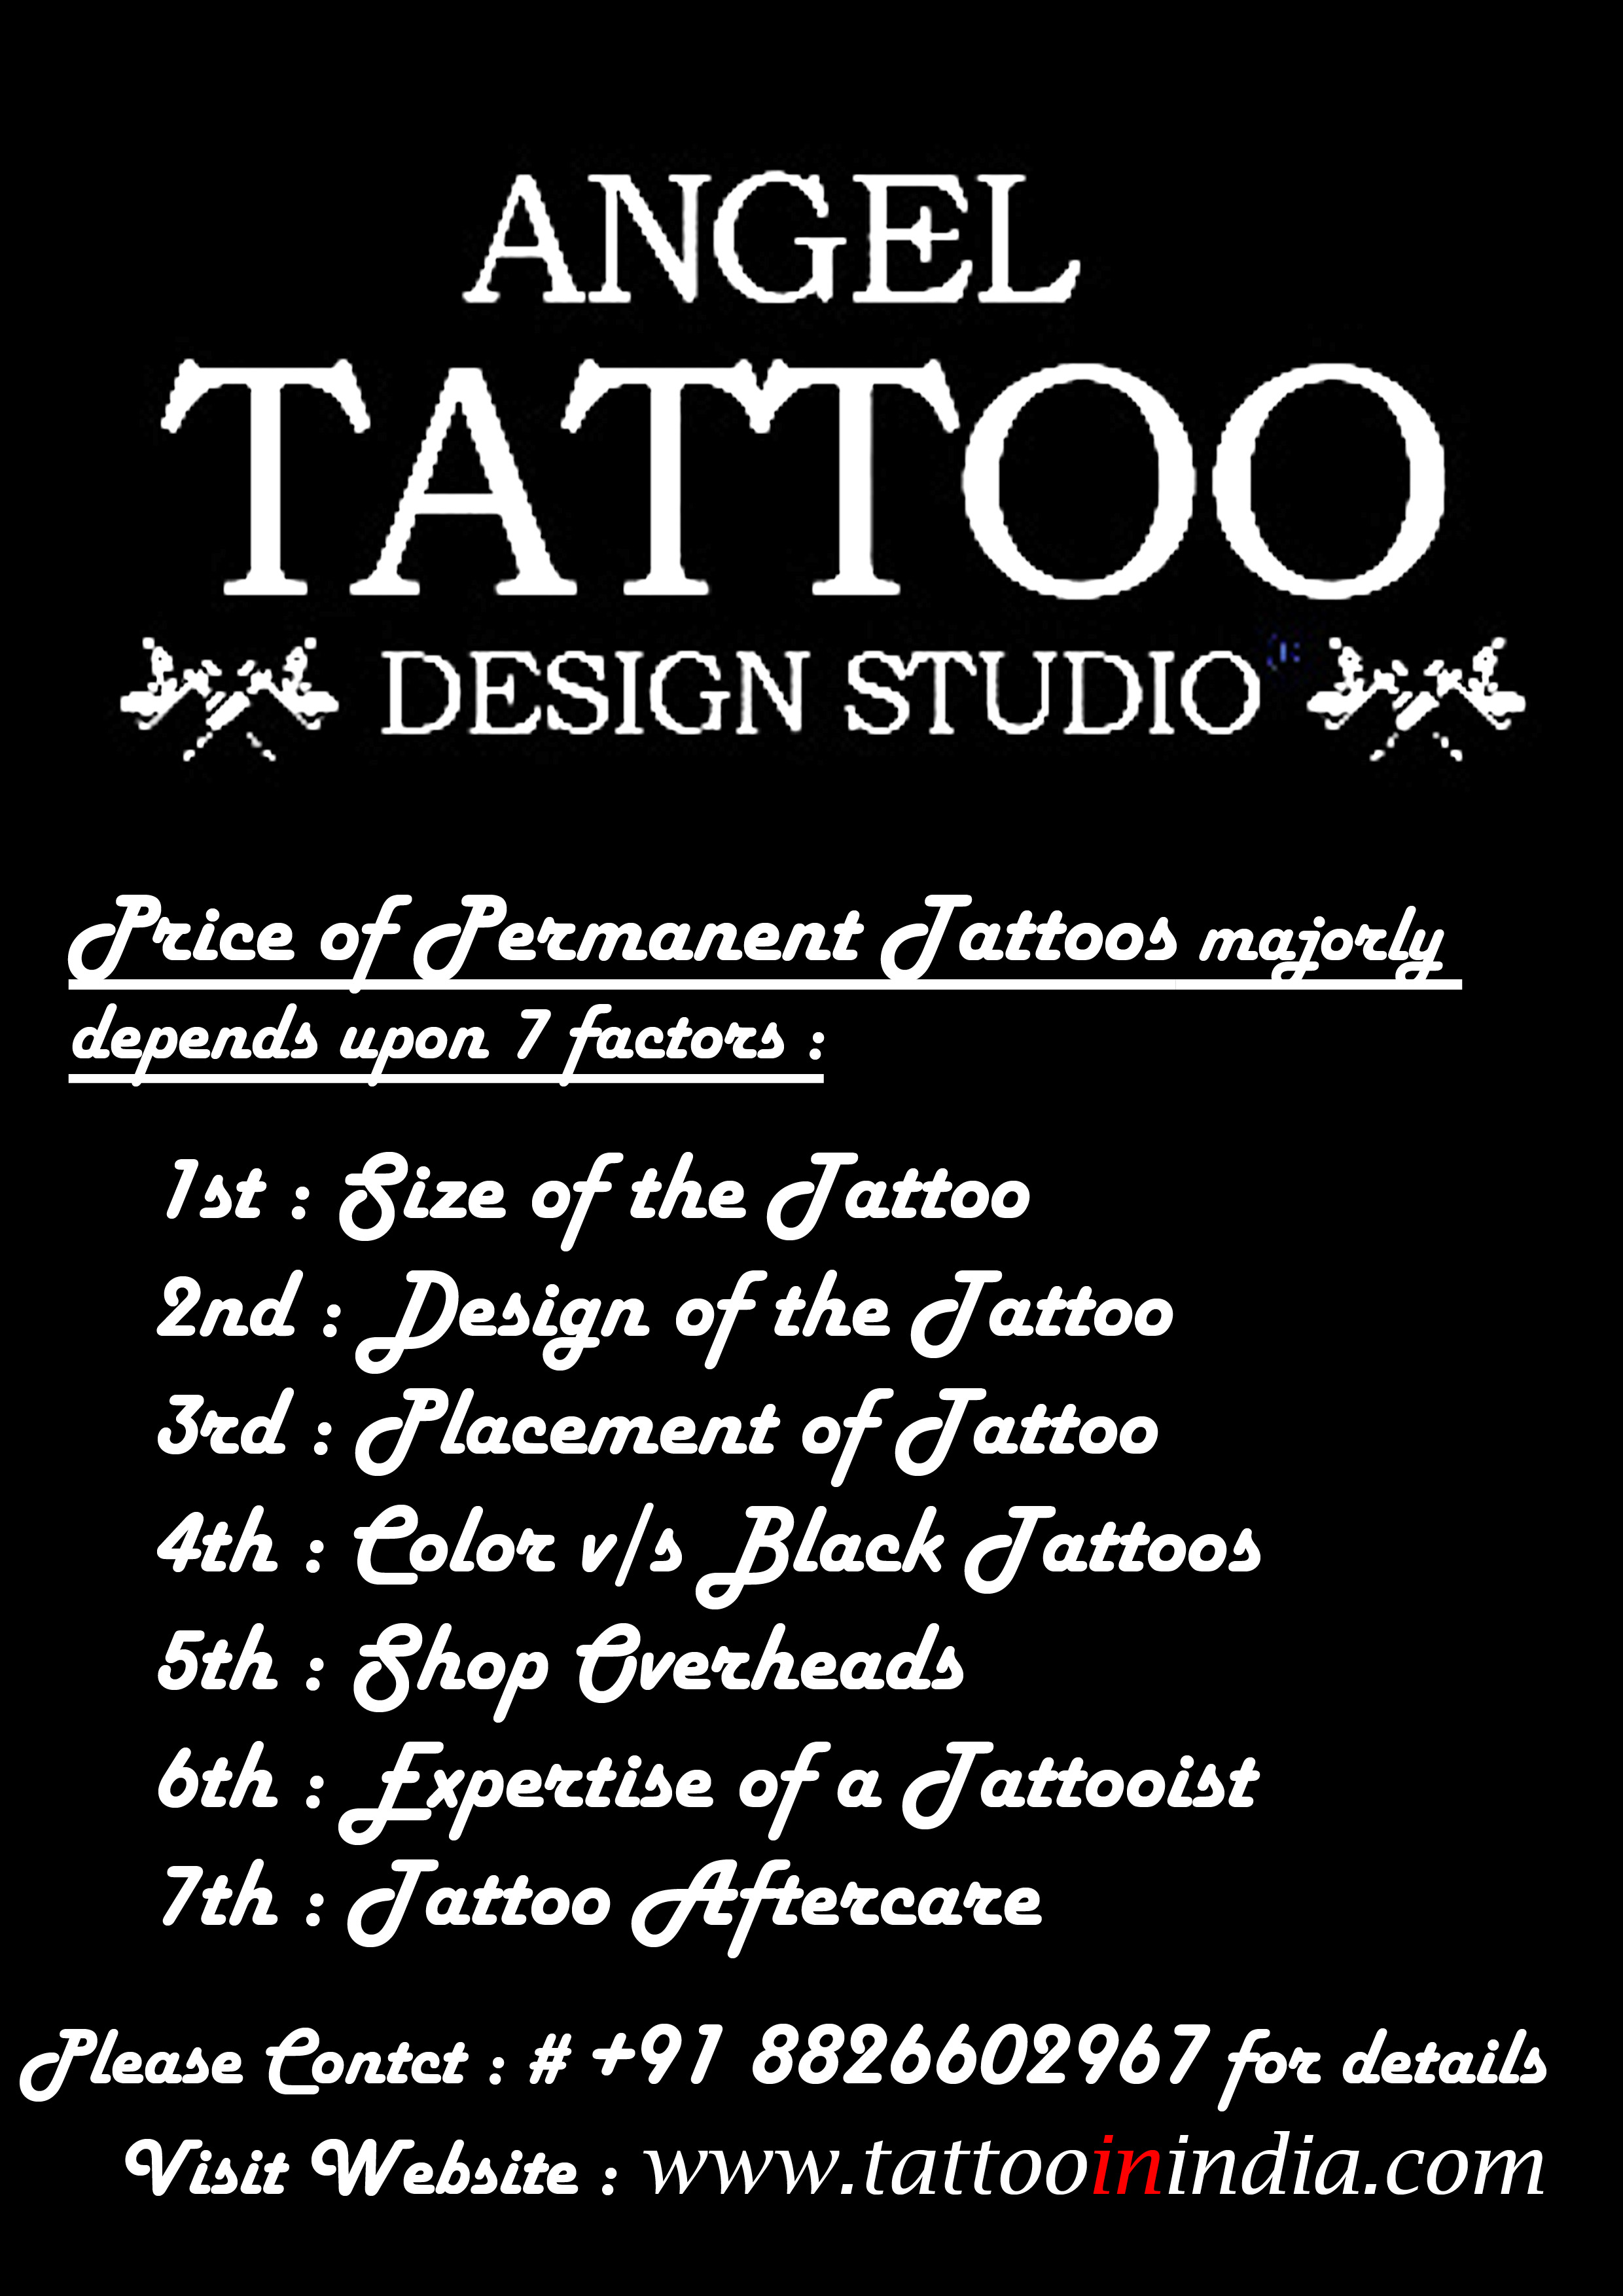 Cost Of Permanent Tattoo In Black Color Price Of Getting Permanent Tattoo Small Big Size